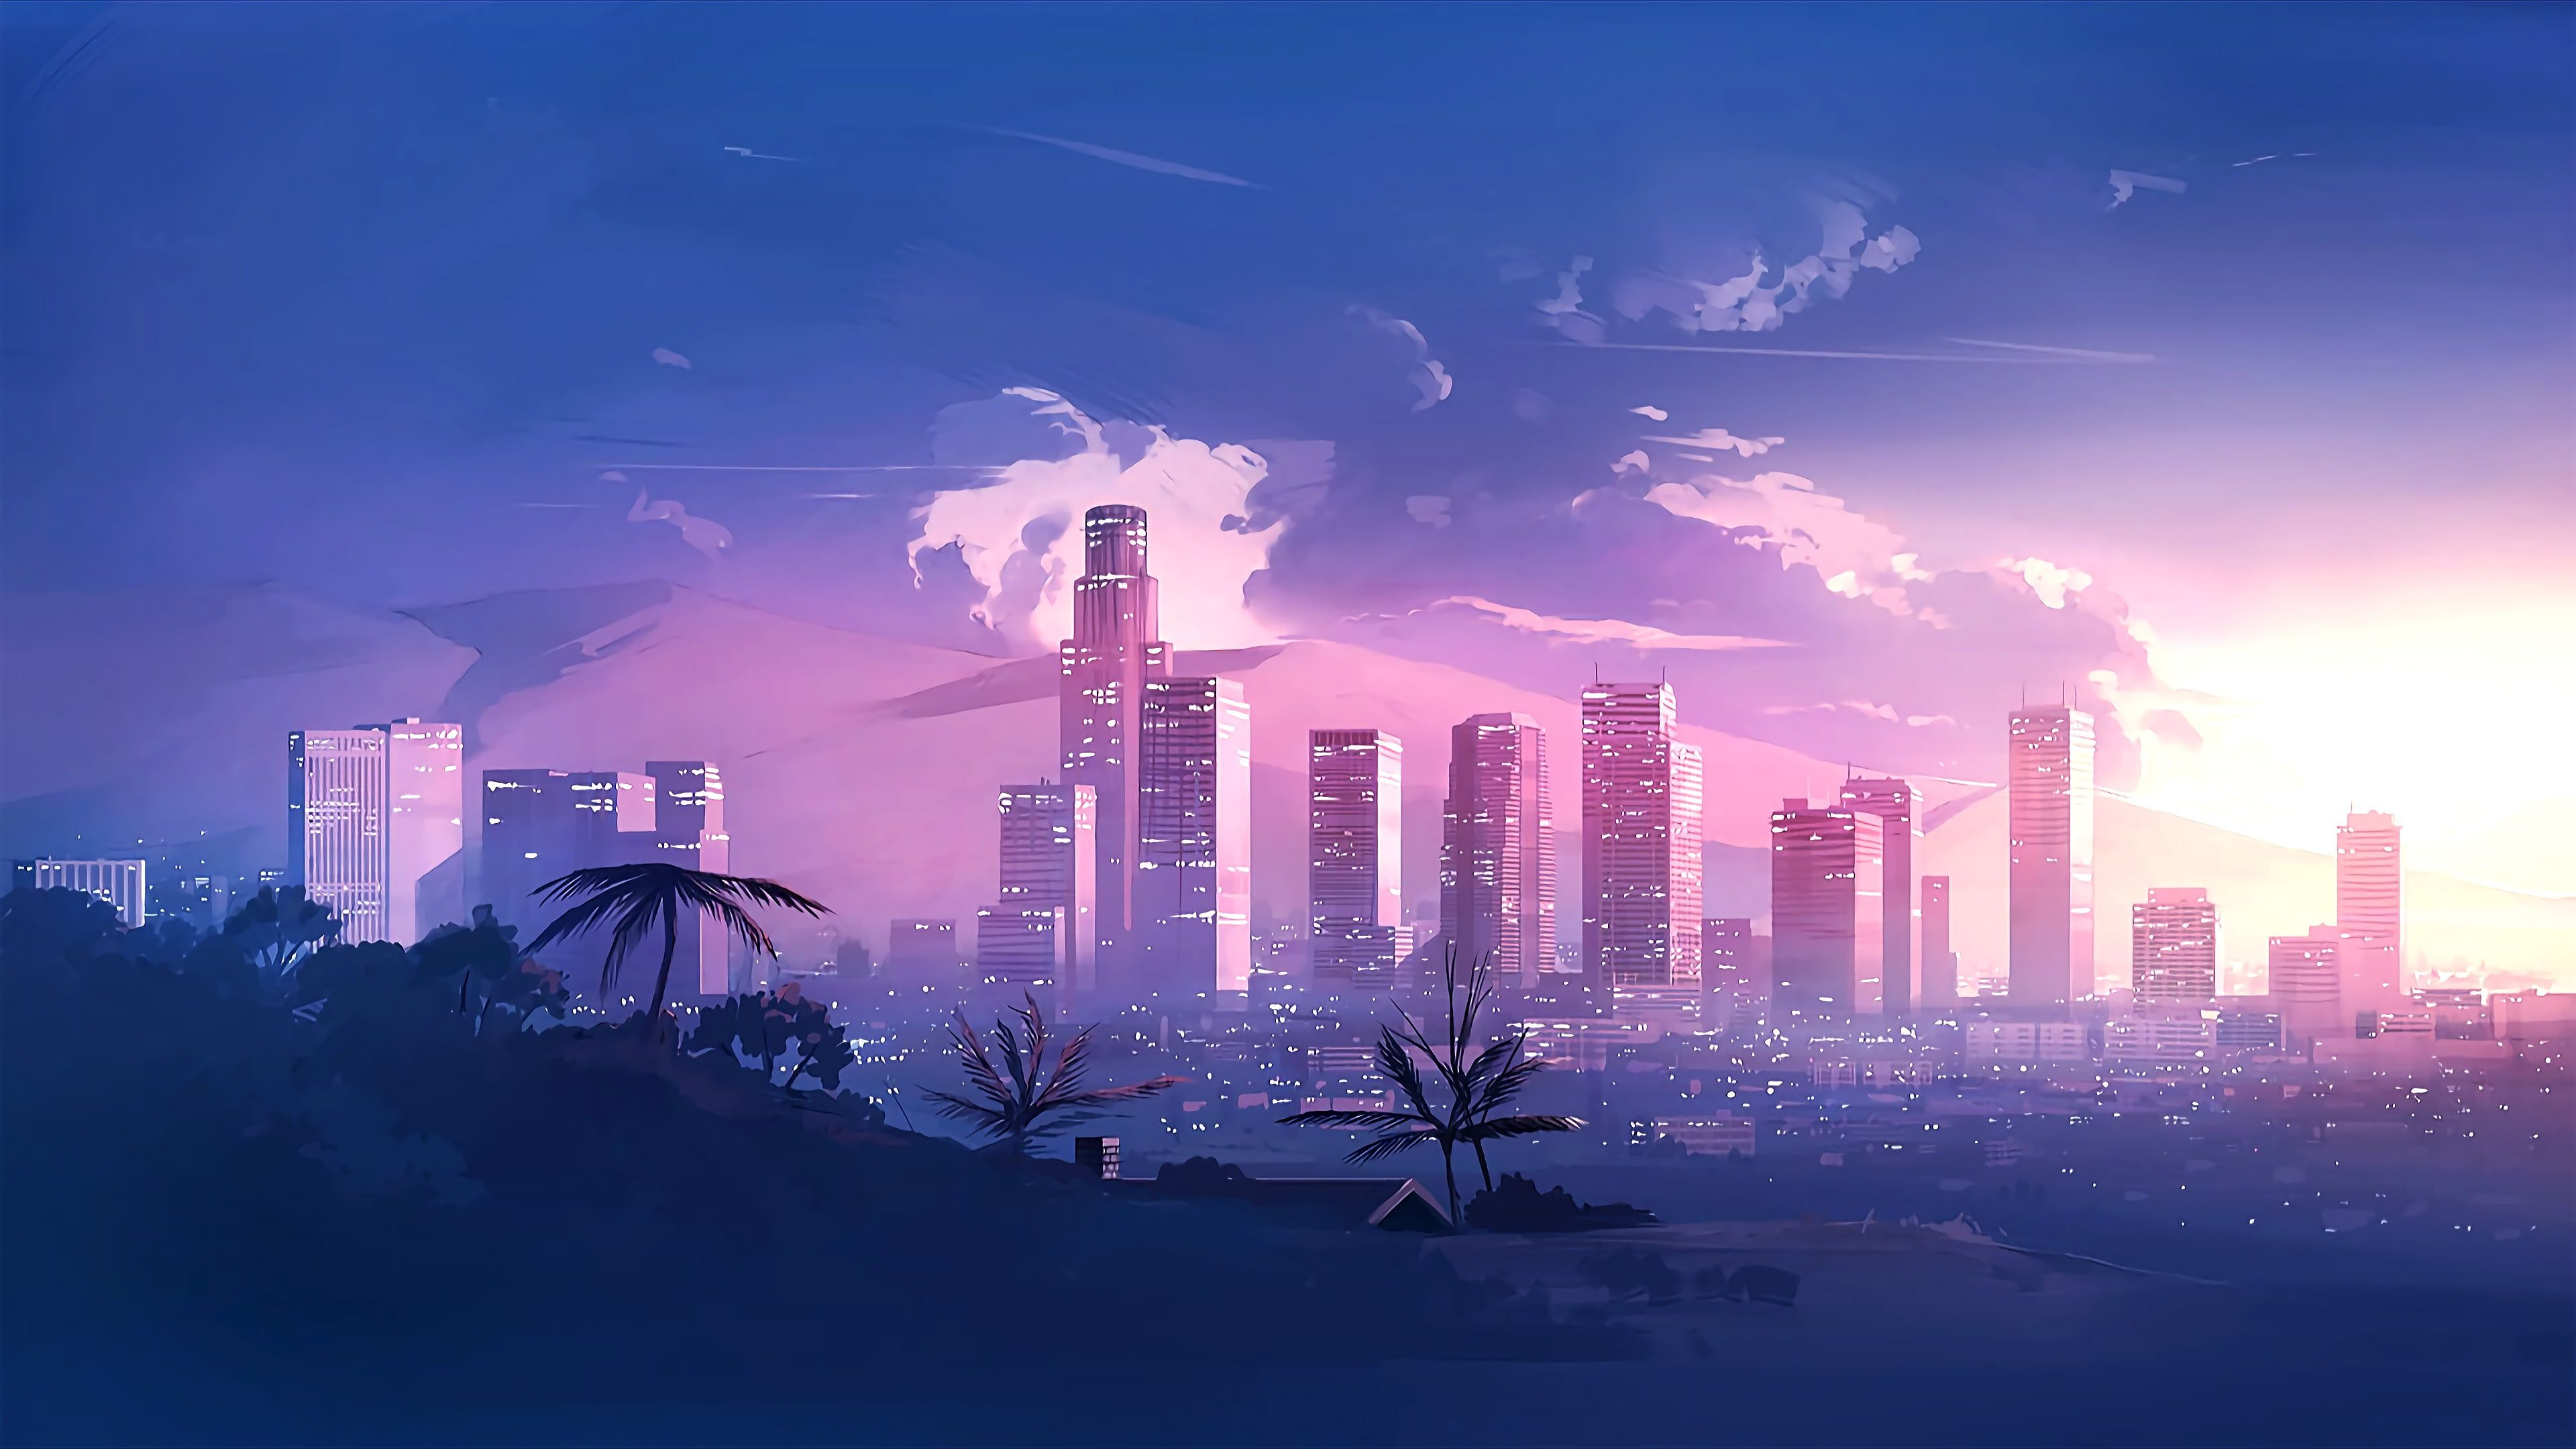 Music The City Style Landscape 80s Style Neon Illustration 80 S Synth Retrowave Synthwave New R In 2020 Anime Scenery Wallpaper City Wallpaper Anime Scenery